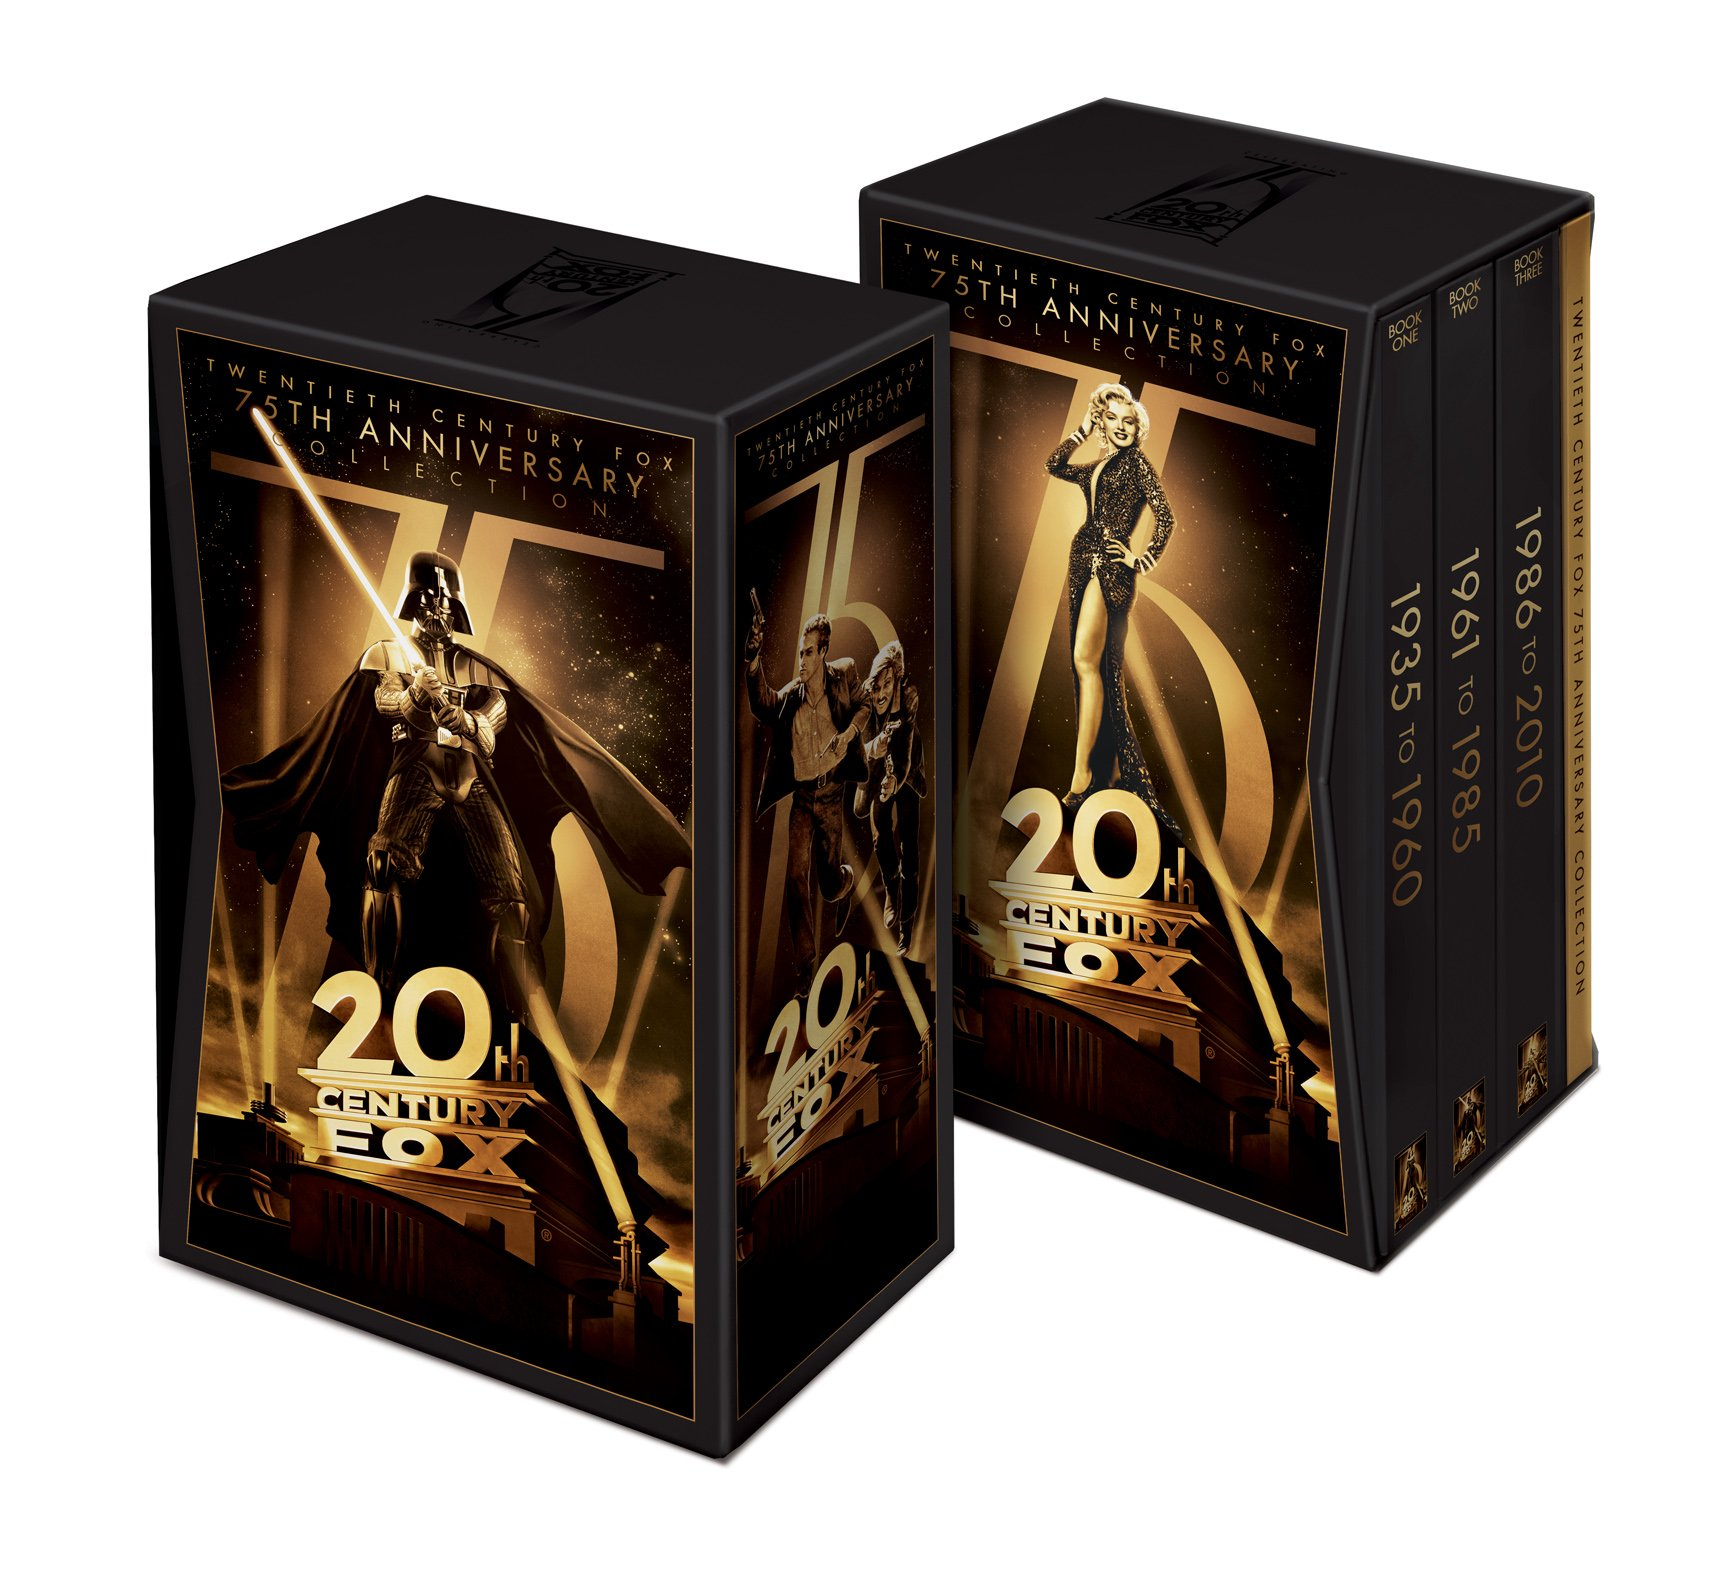 Fox 75th Anniversary Collection by 20th Century Fox